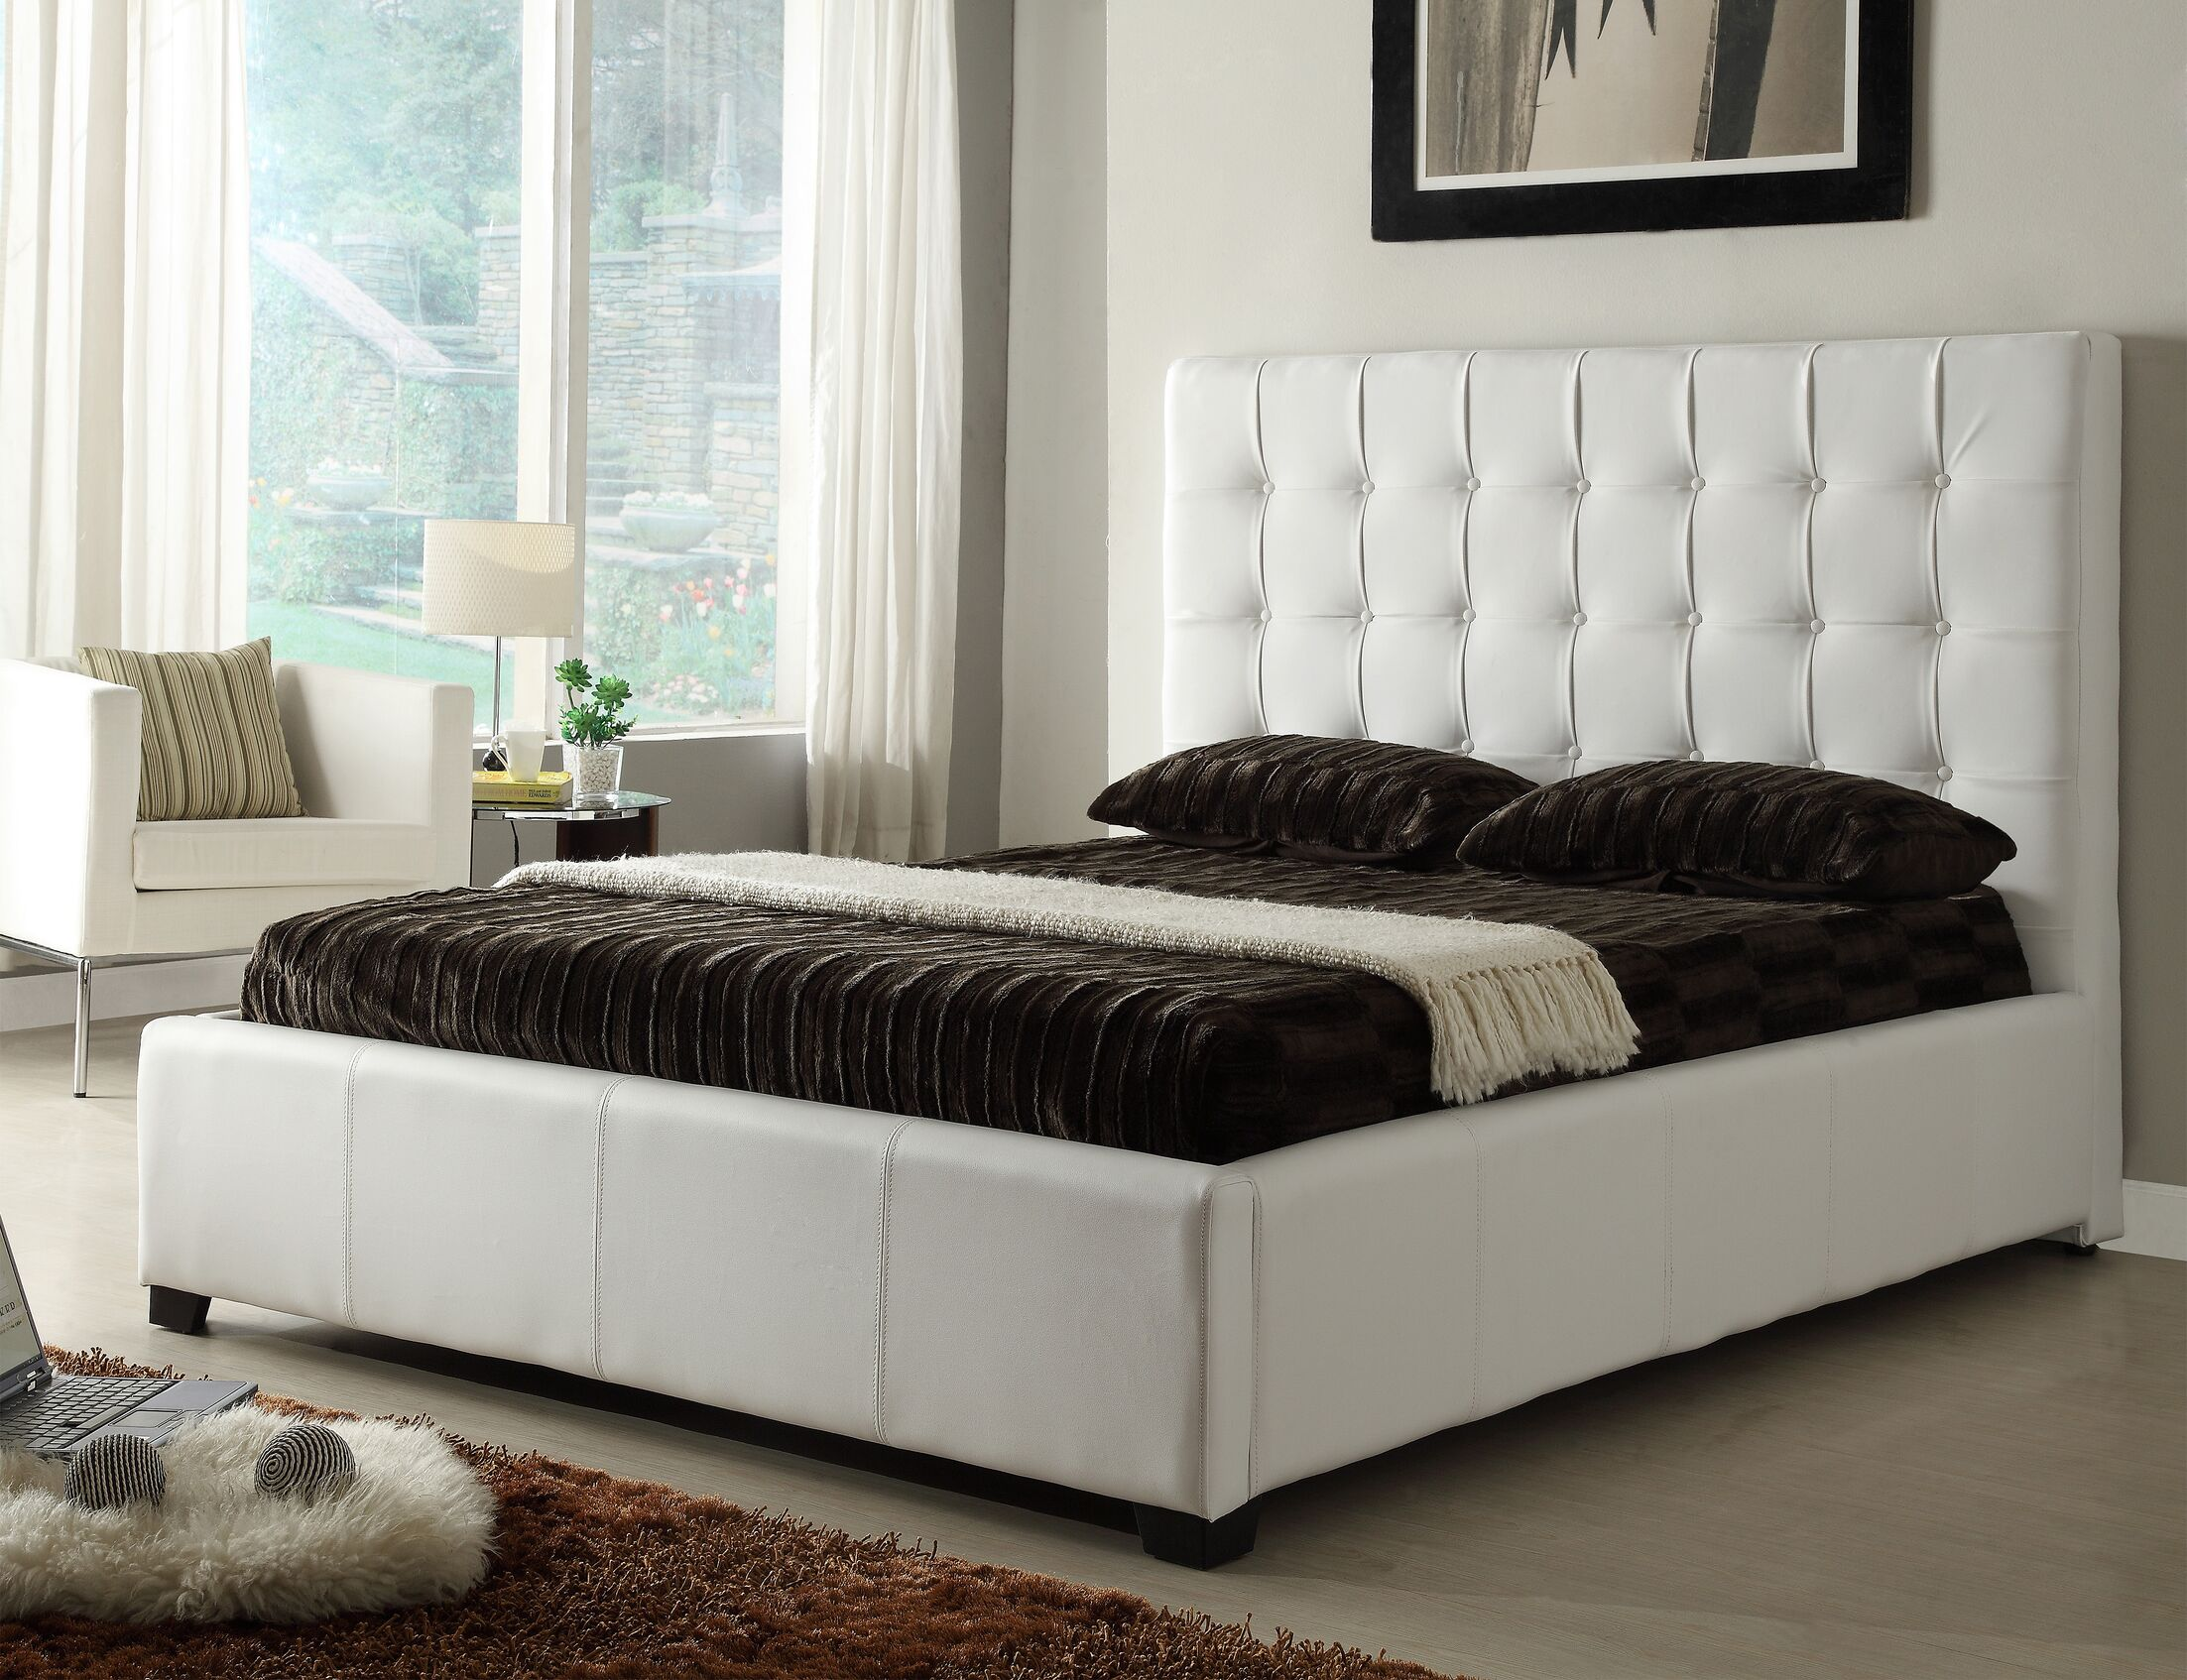 Athens Upholstered Storage Platform Bed Size: Queen, Color: White